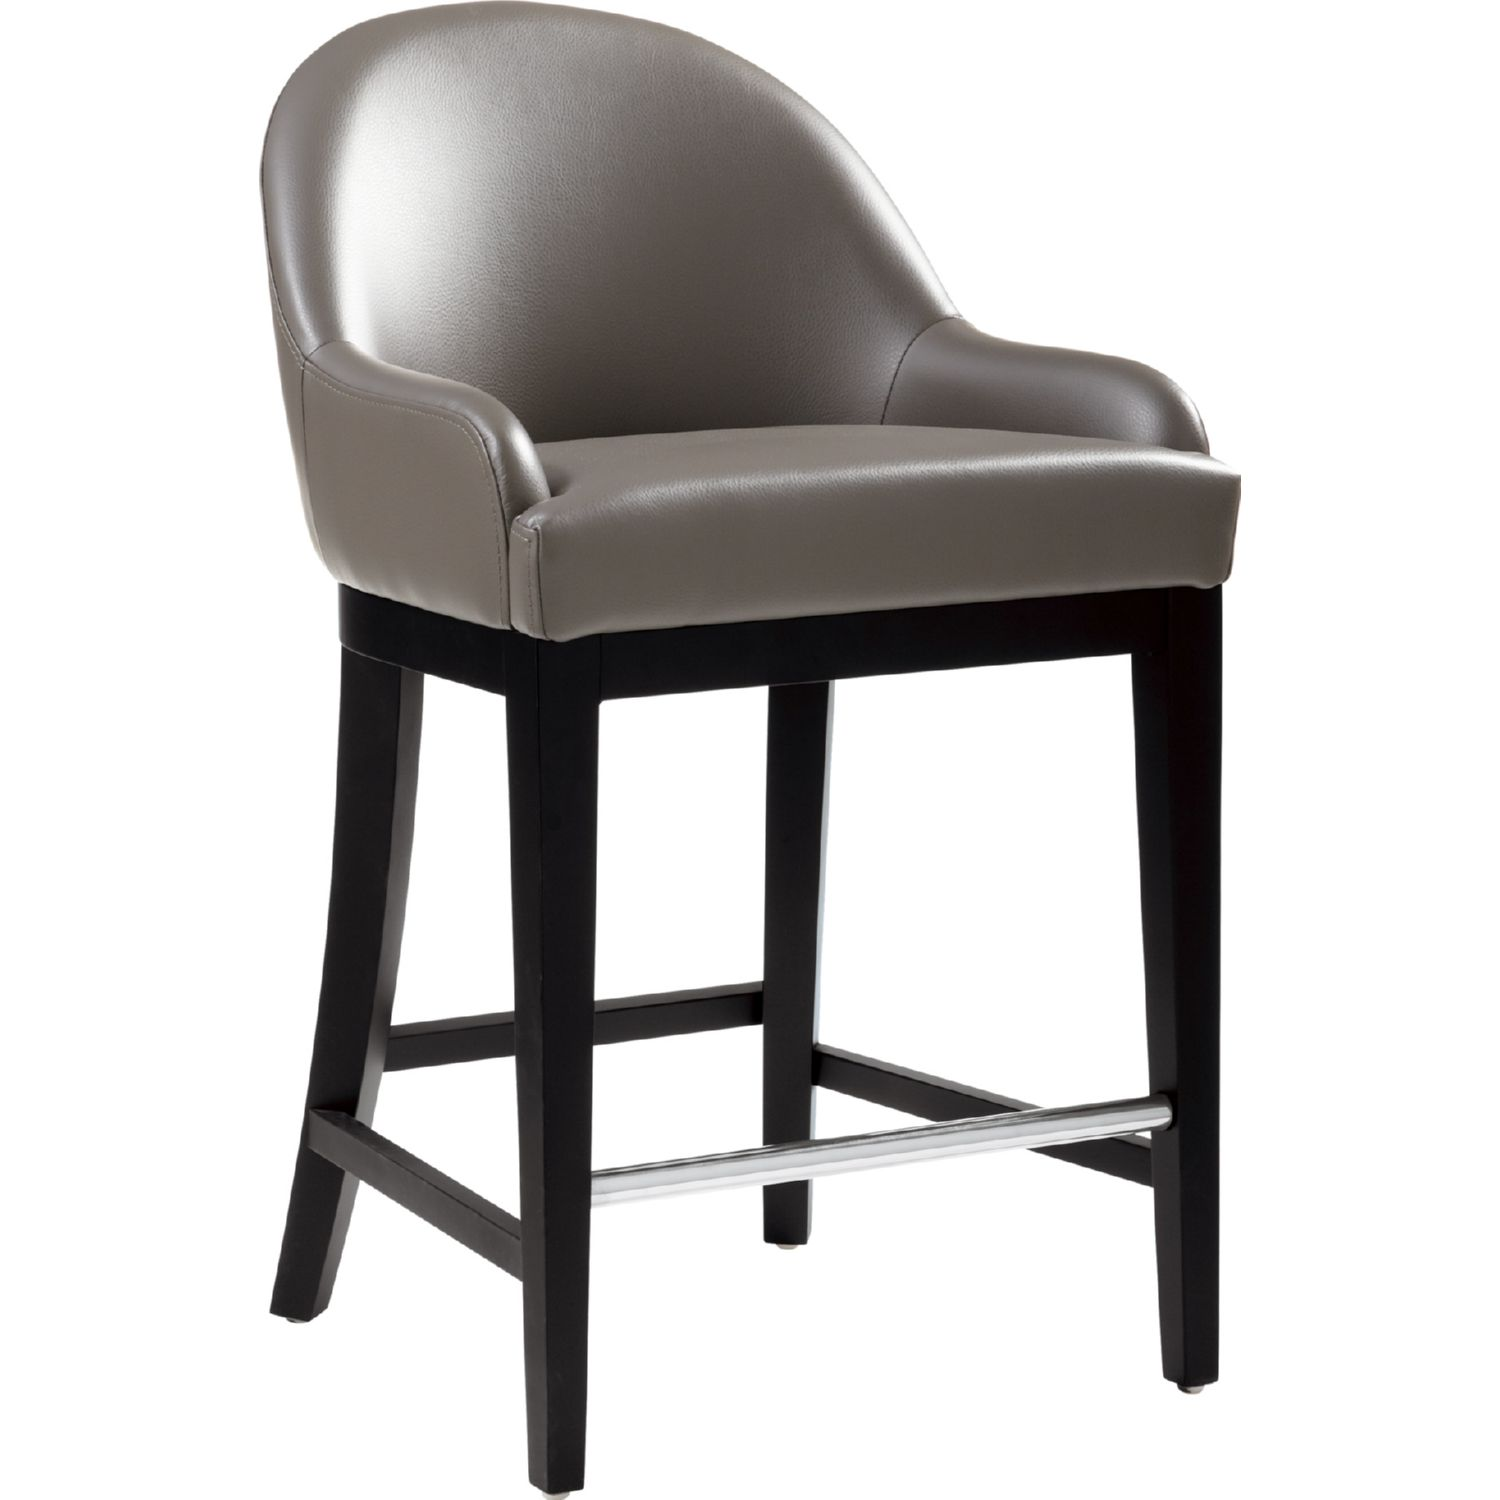 Sunpan 80438 Haven Counter Height Stool In Grey Leather